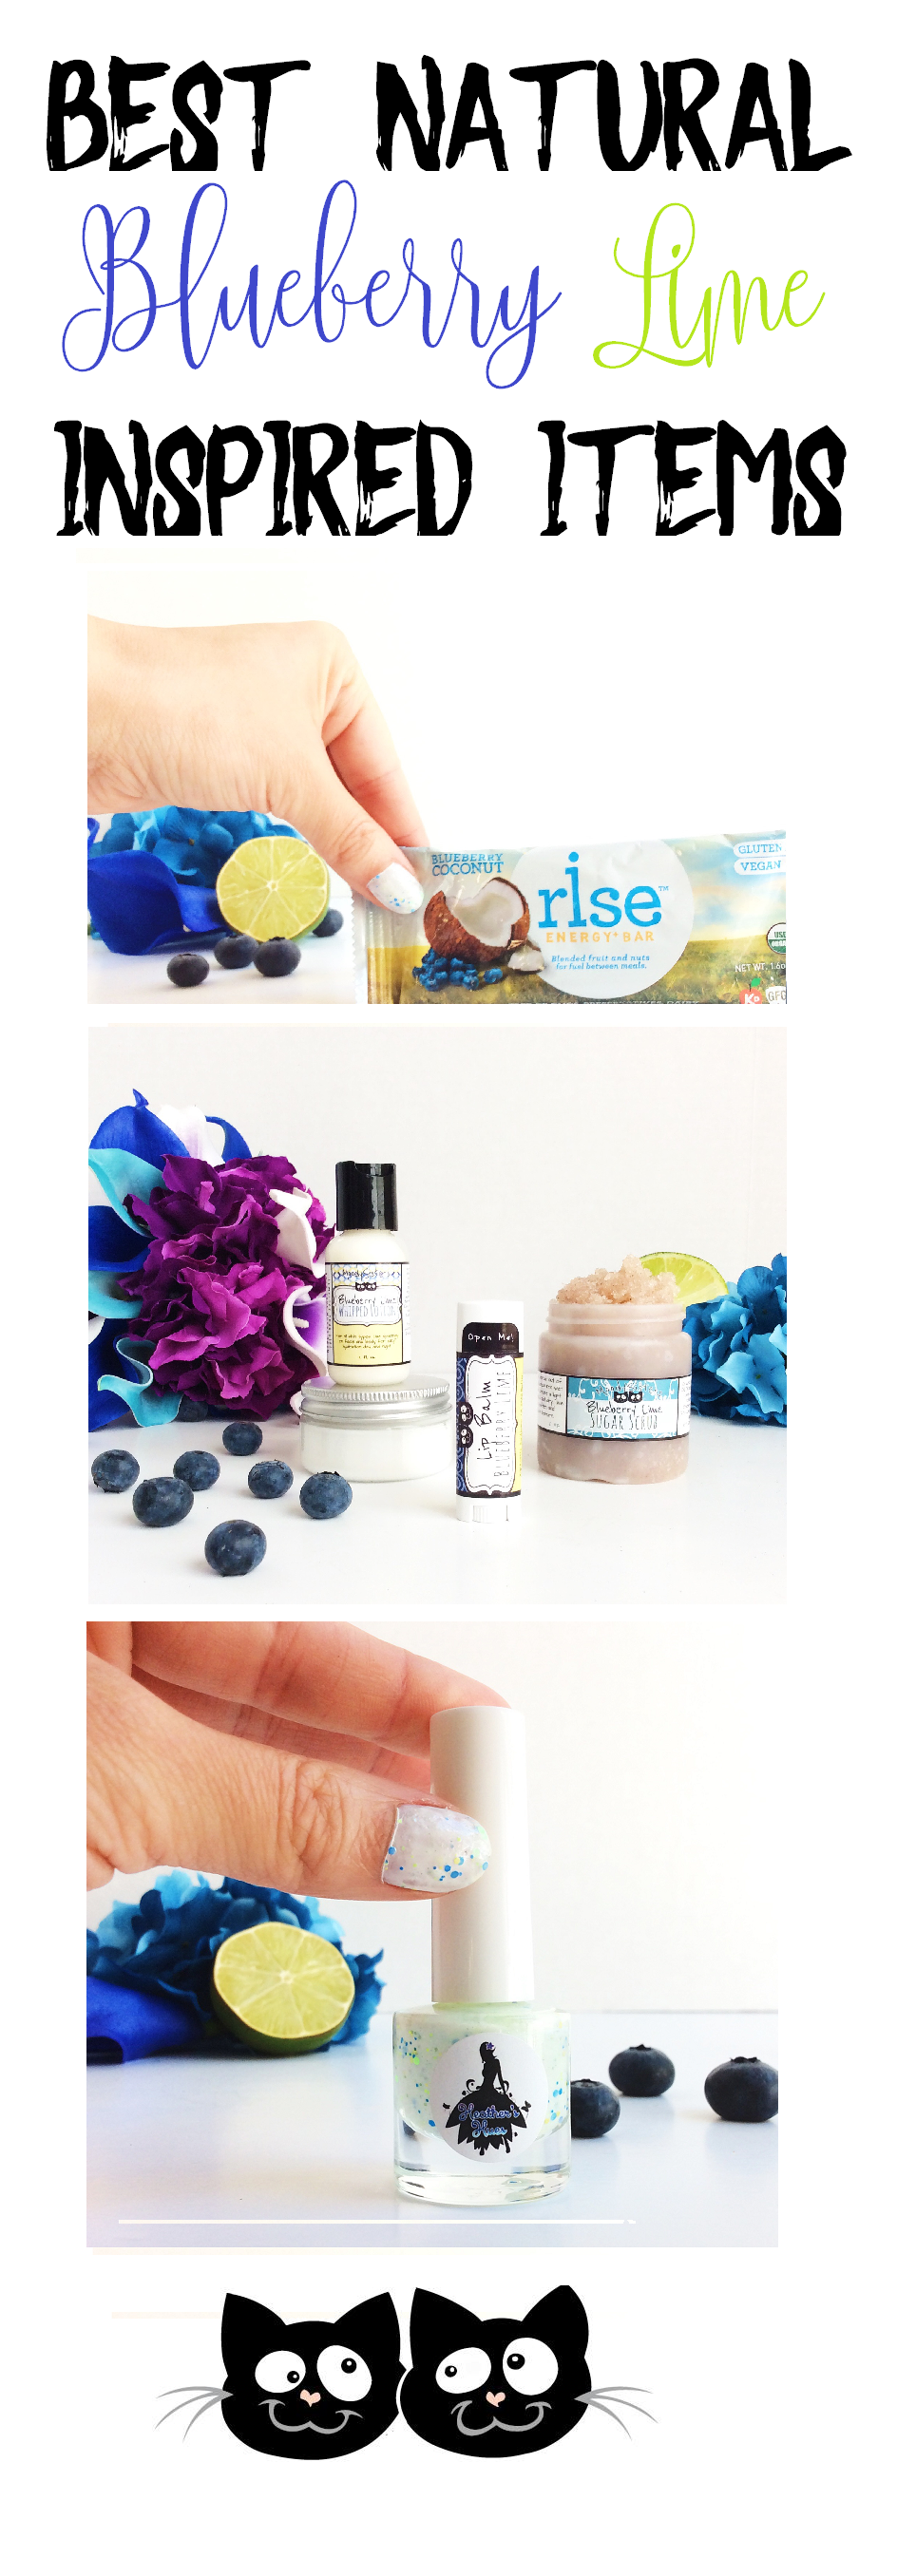 Moody Sisters Blueberry Lime Must have product picks